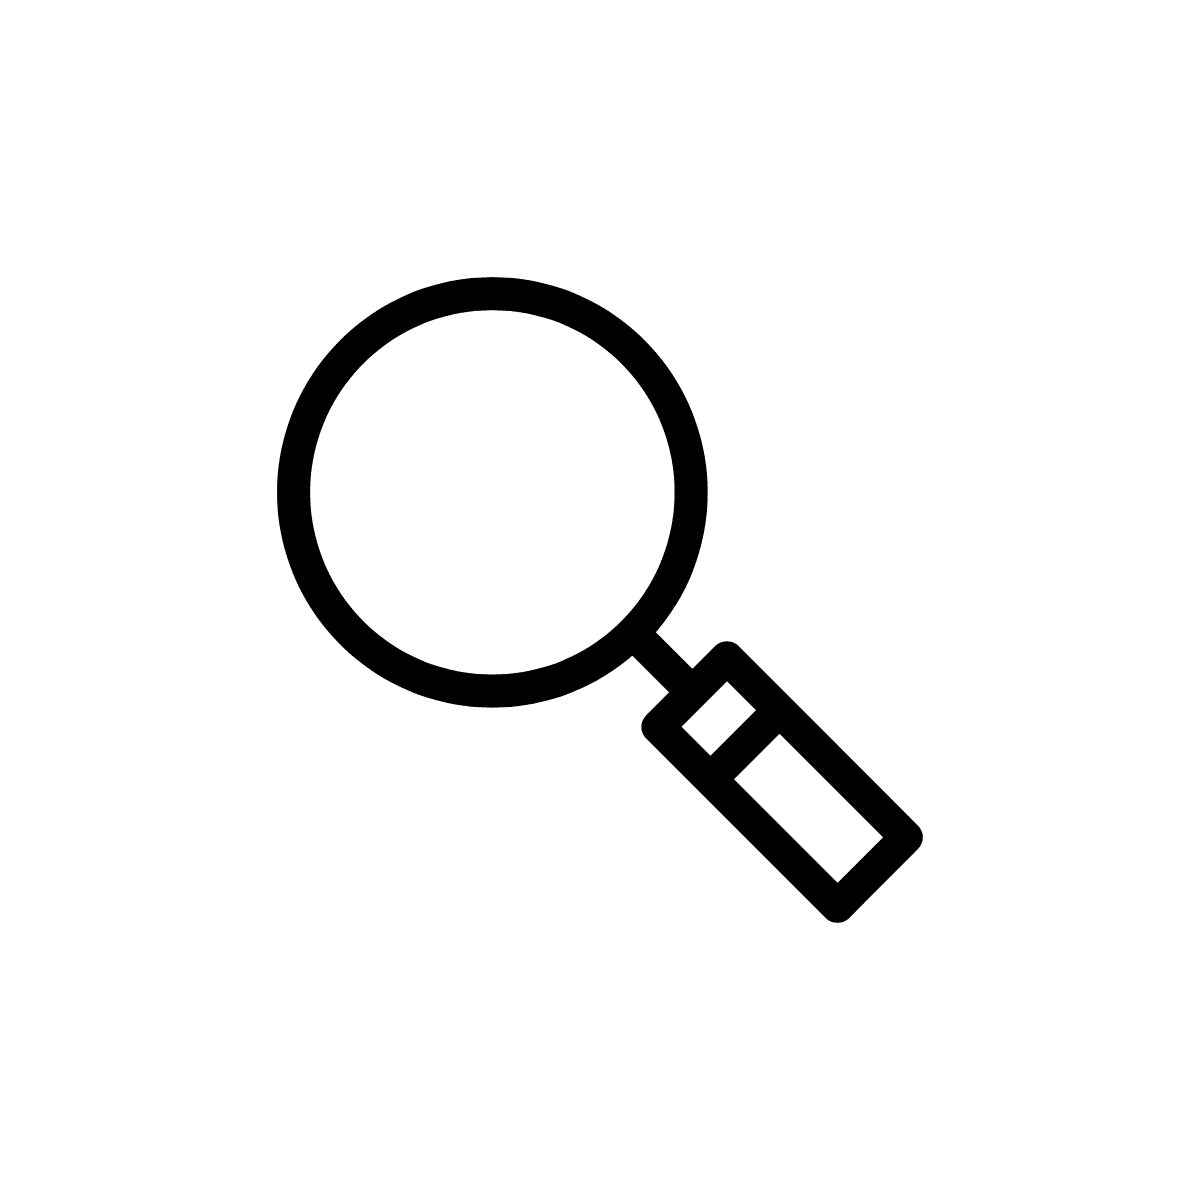 Black magnifying glass on transparent background.